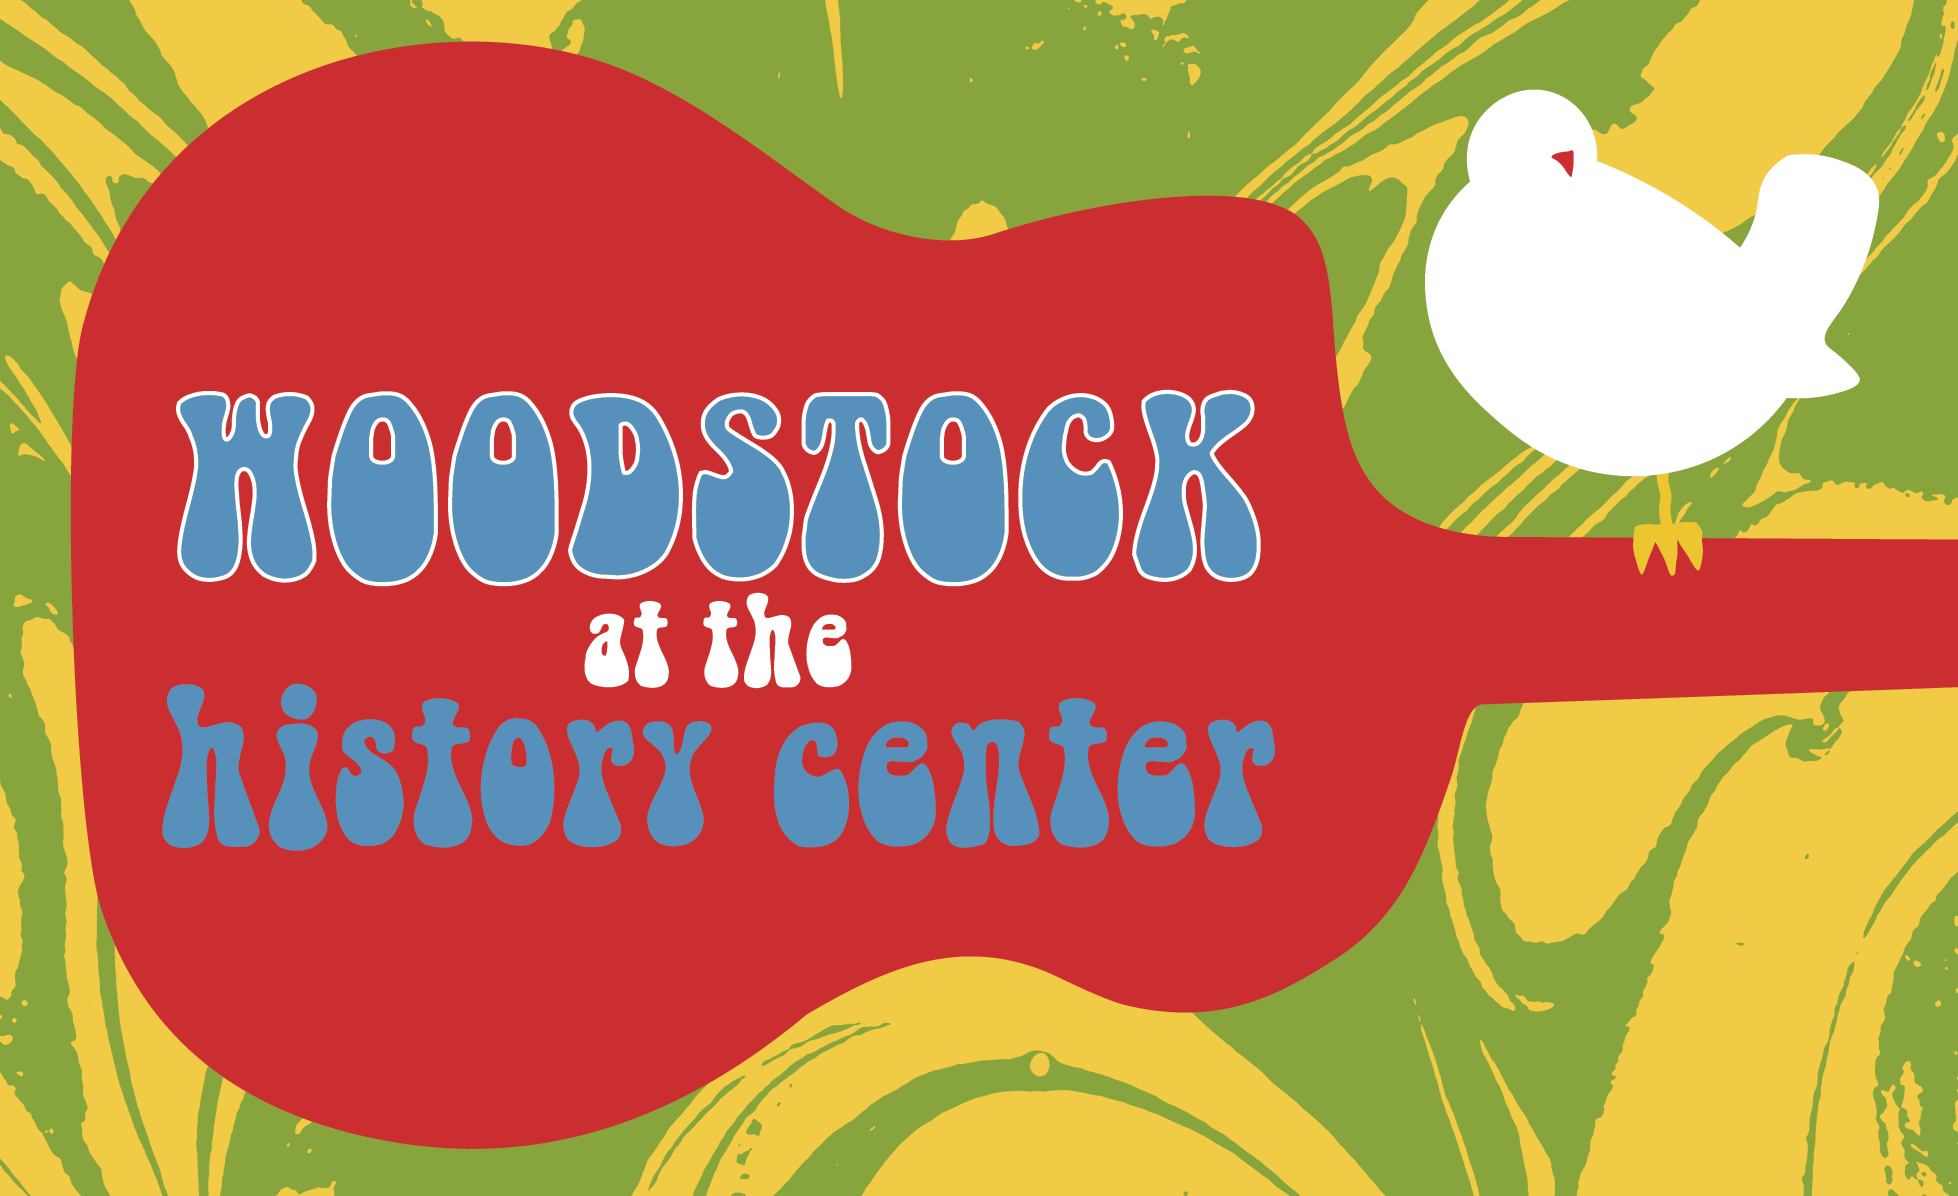 Woodstock Night at the History Center